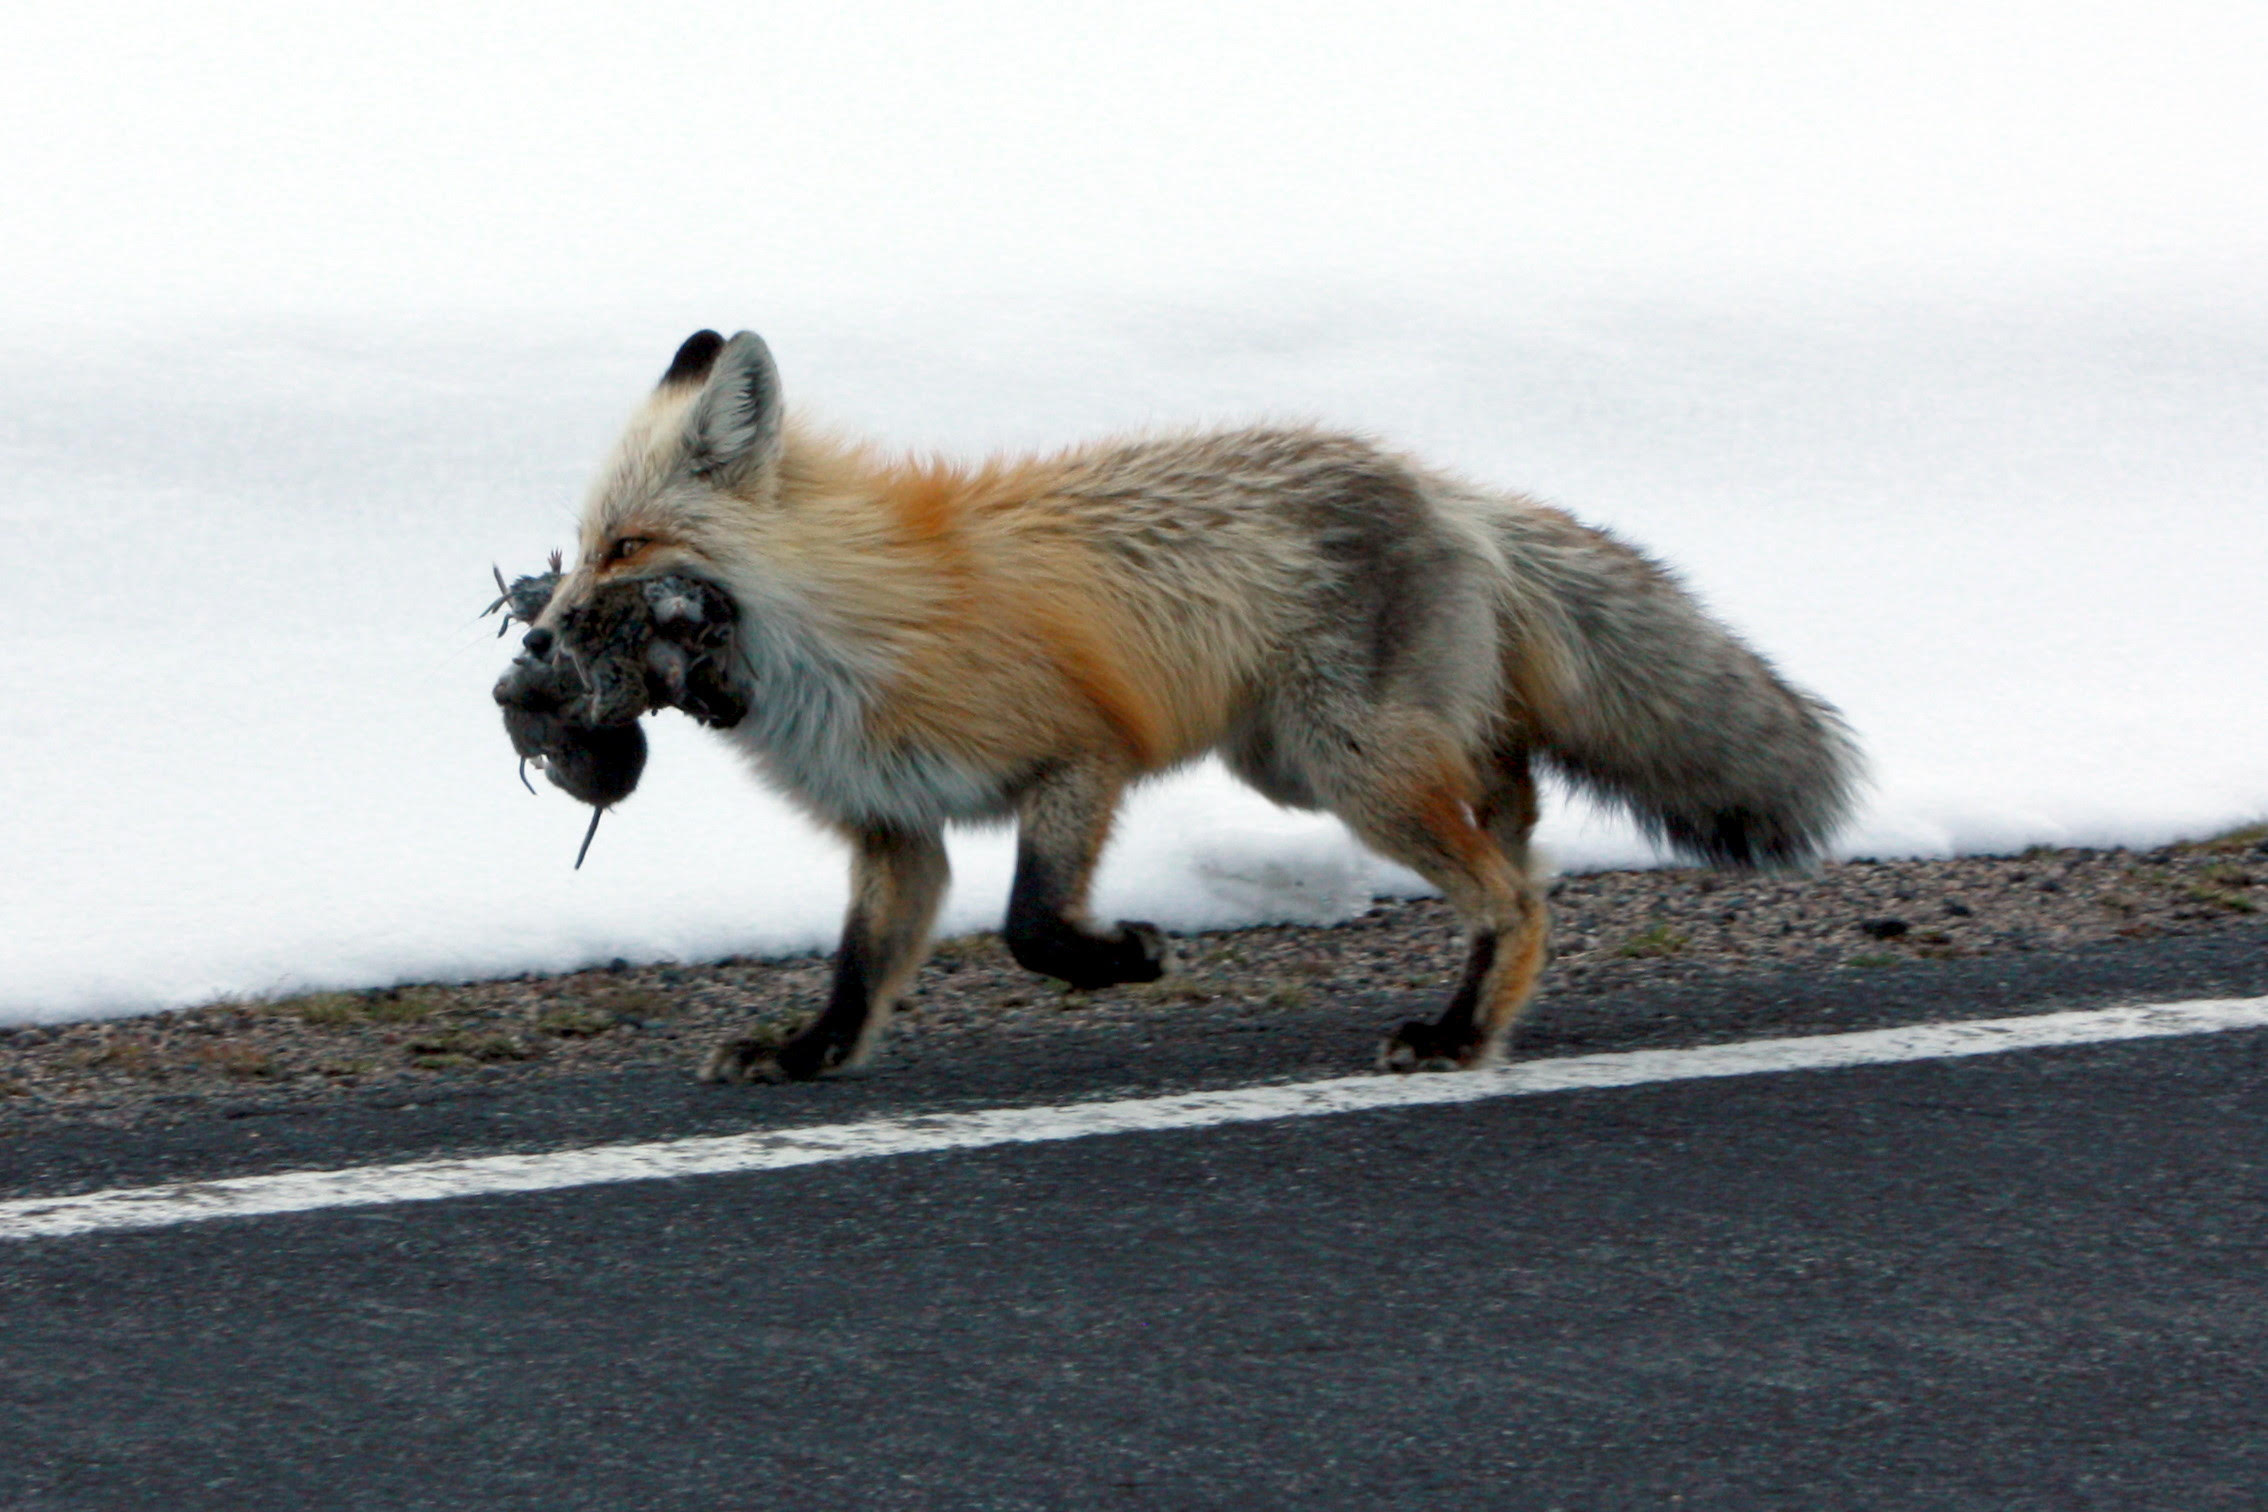 We hope you enjoy our contest and can 'fit us in' (like this fox) your adventure schedule in magical Yellowstone country. You never know what you'll run into along it's roads and trails.